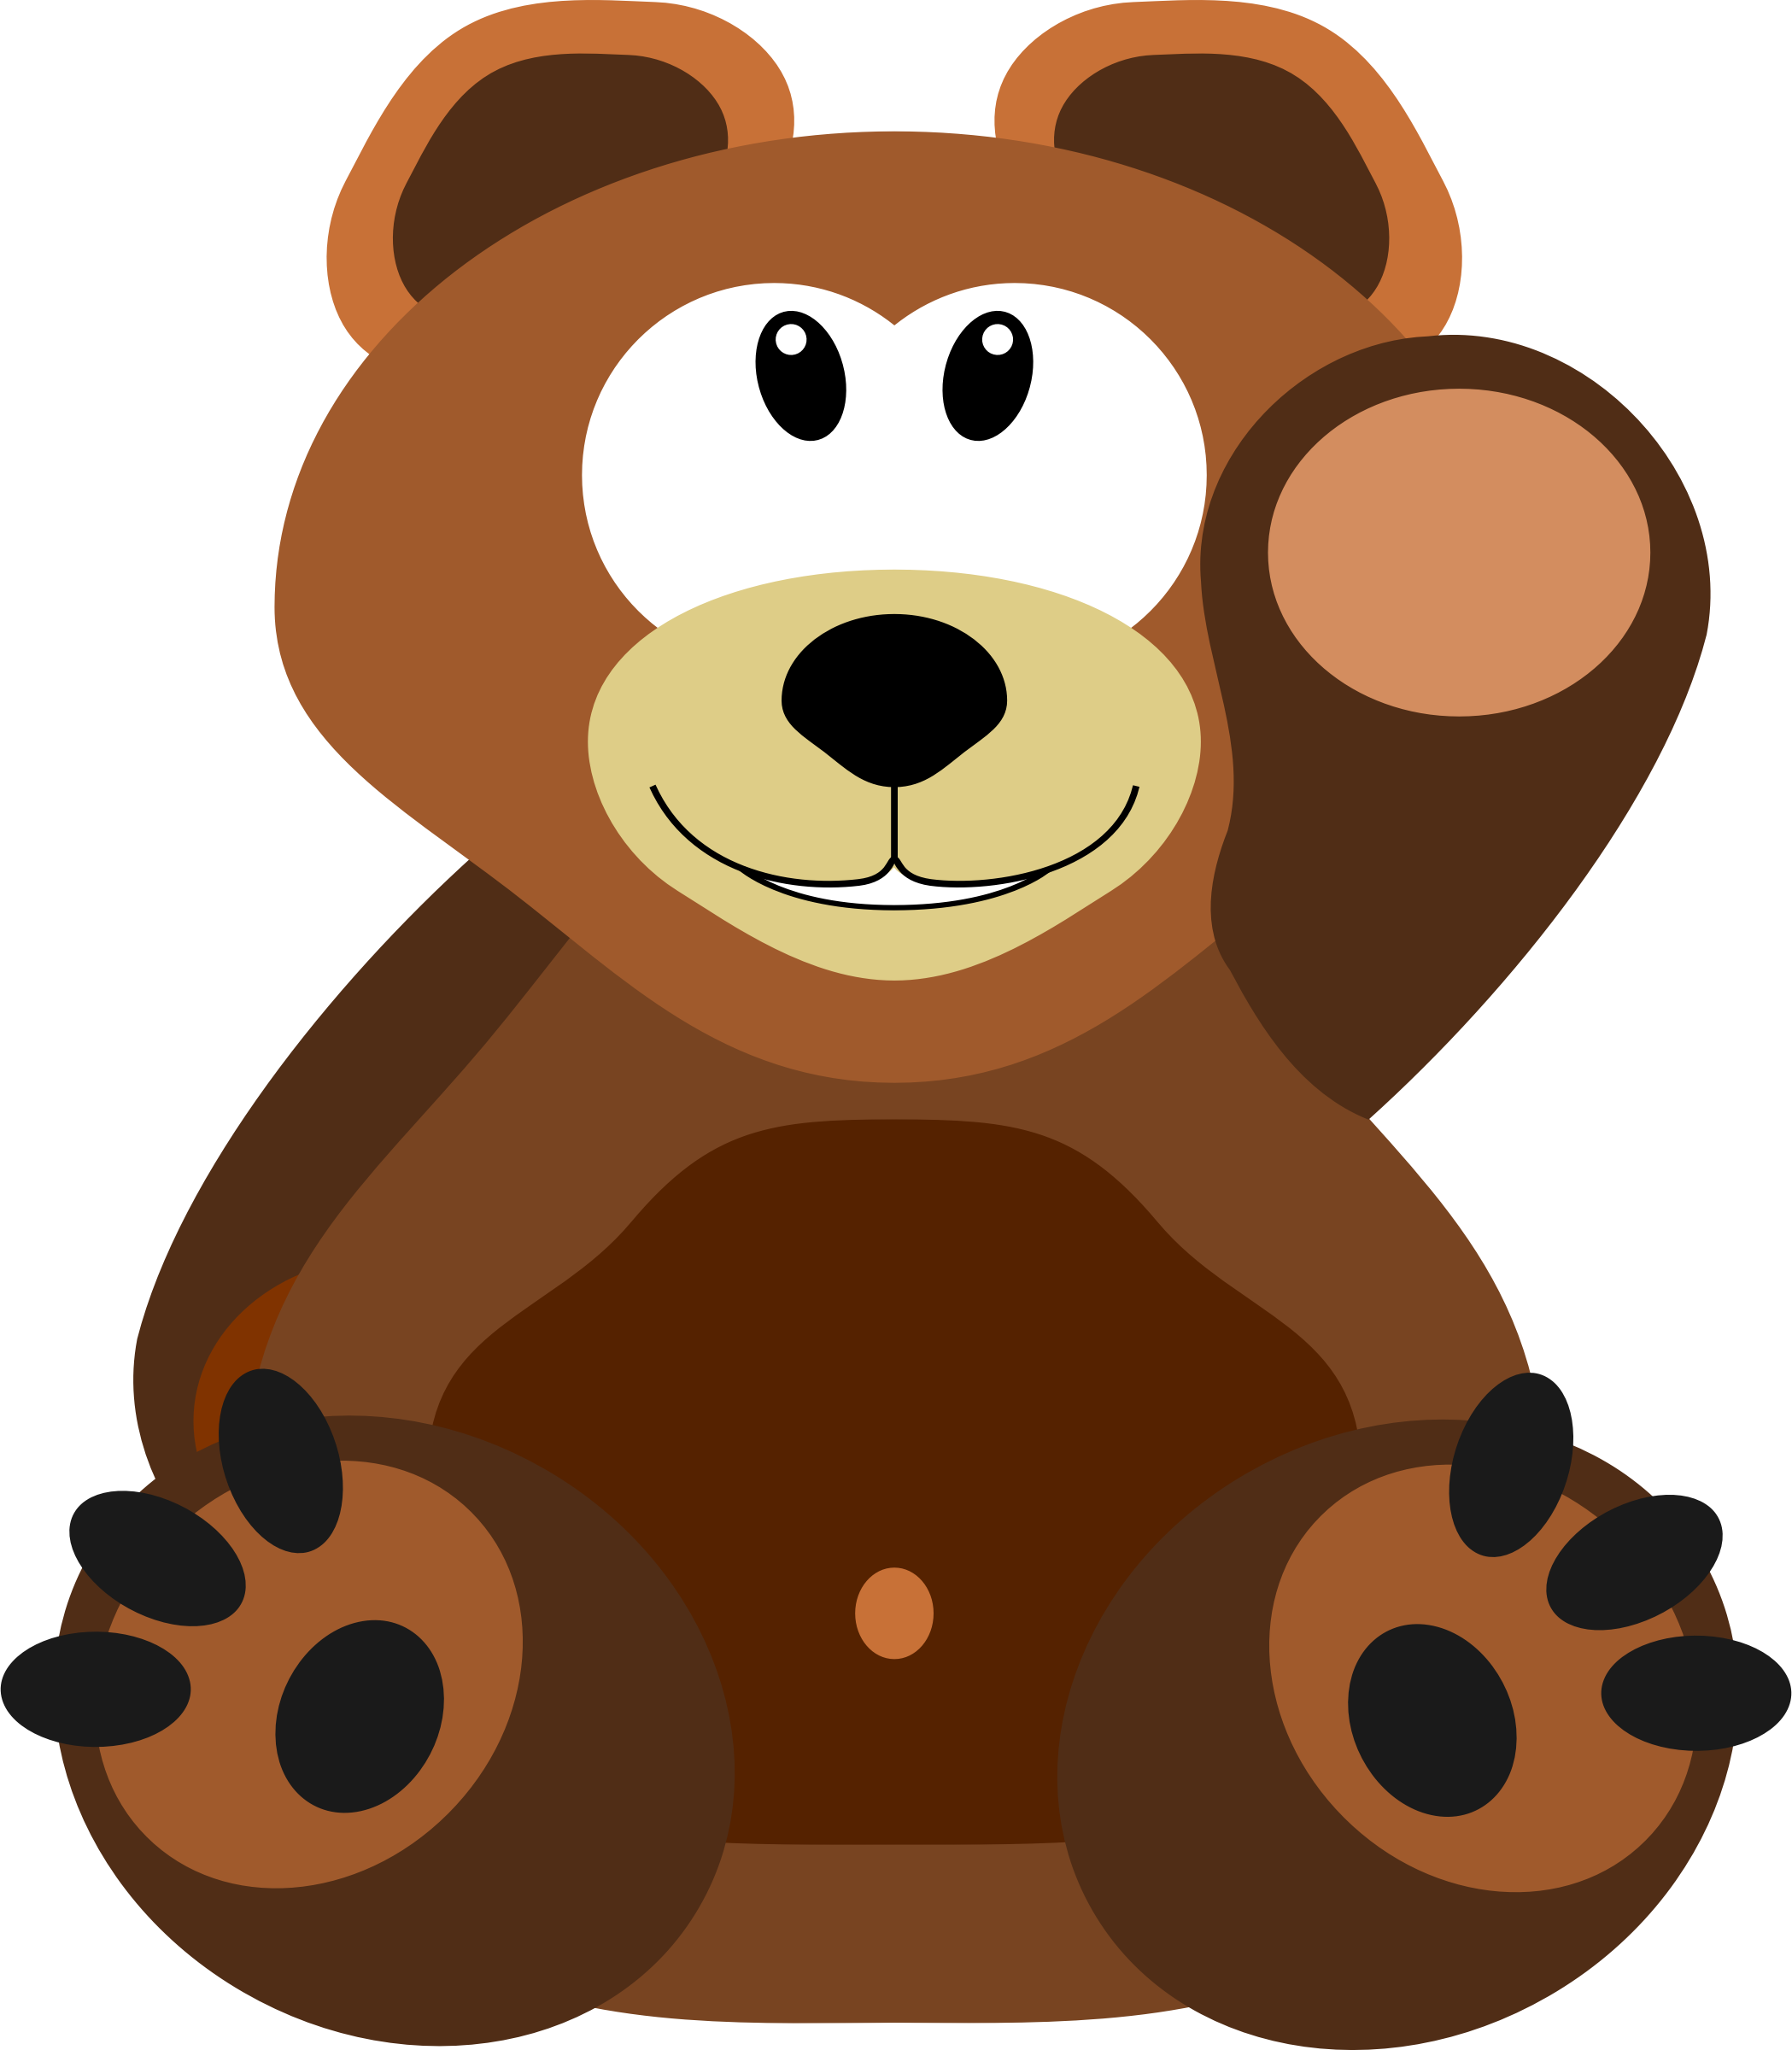 Teddy Bear by GDJ